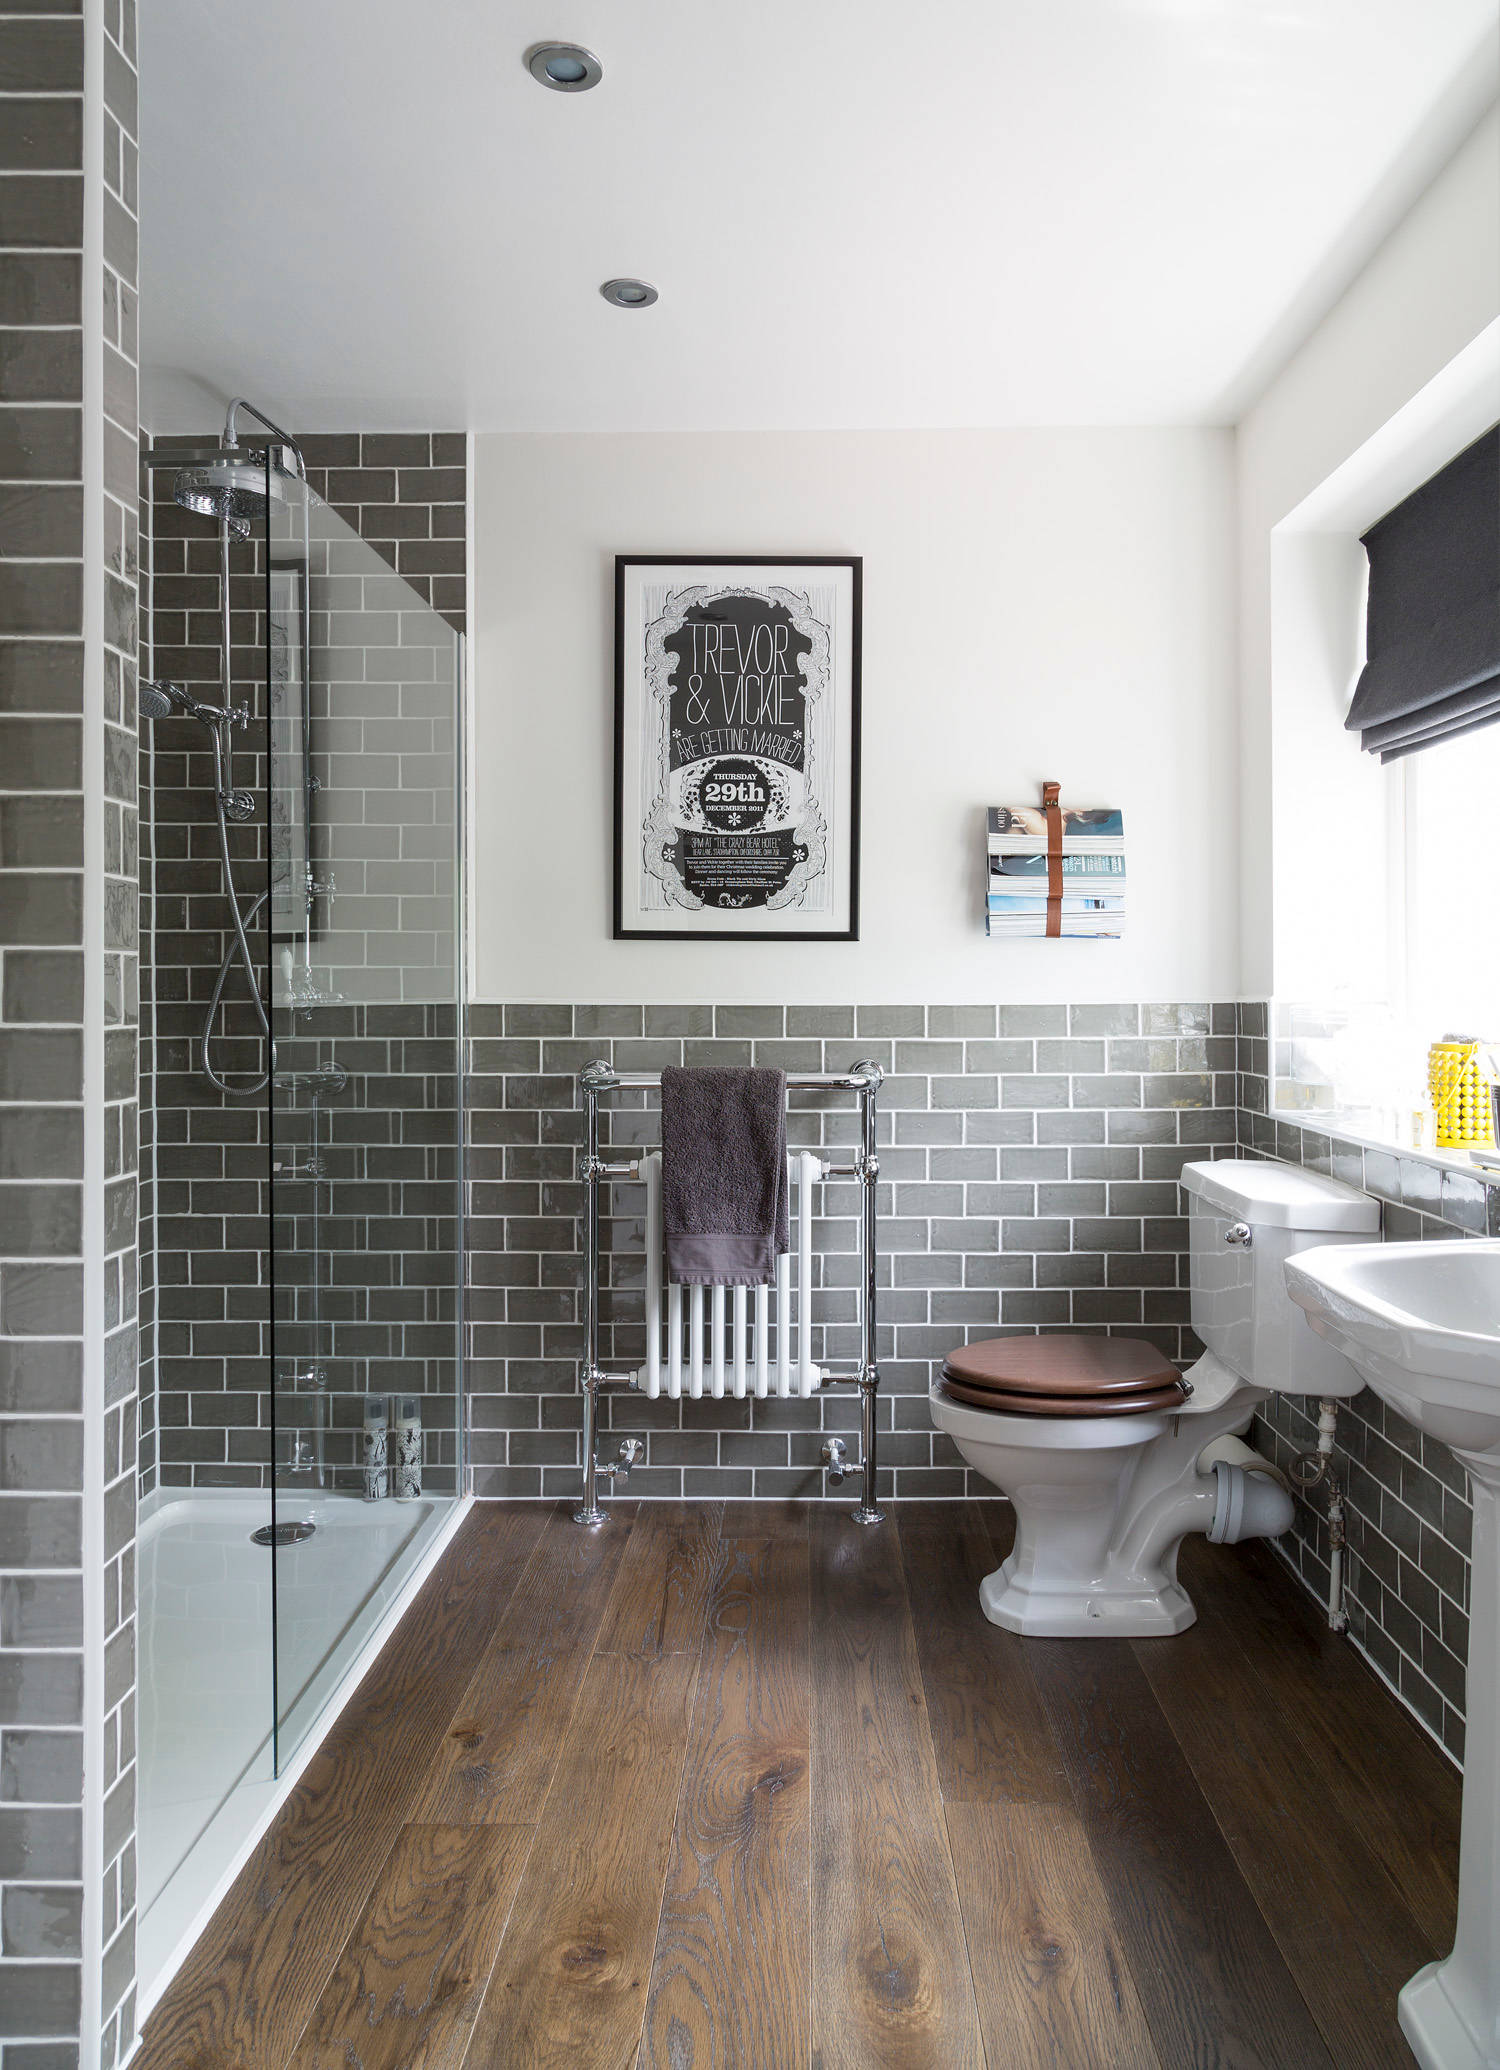 75 Beautiful Gray Tile Bathroom Pictures Ideas March 2021 Houzz